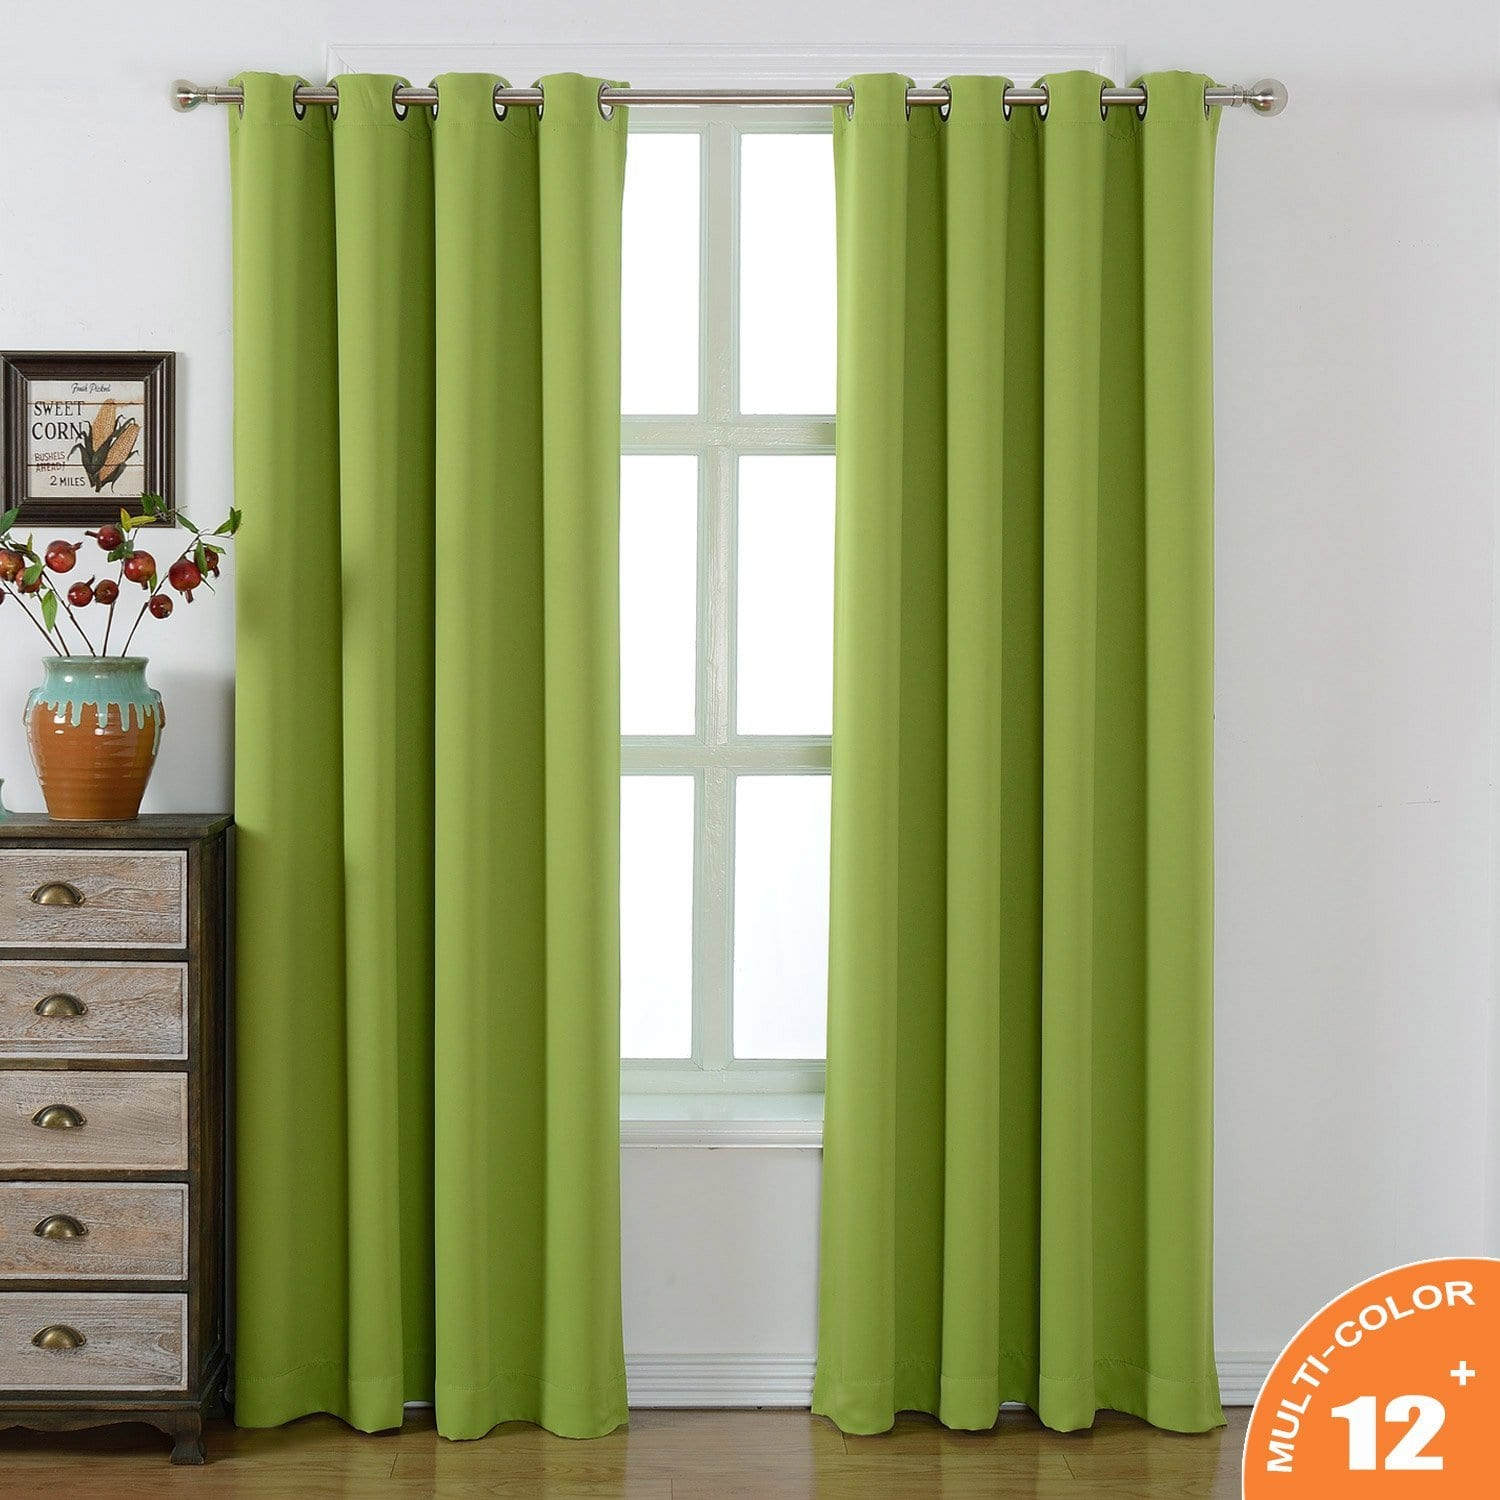 Most Buy List of Best Sliding Glass Door Curtains with